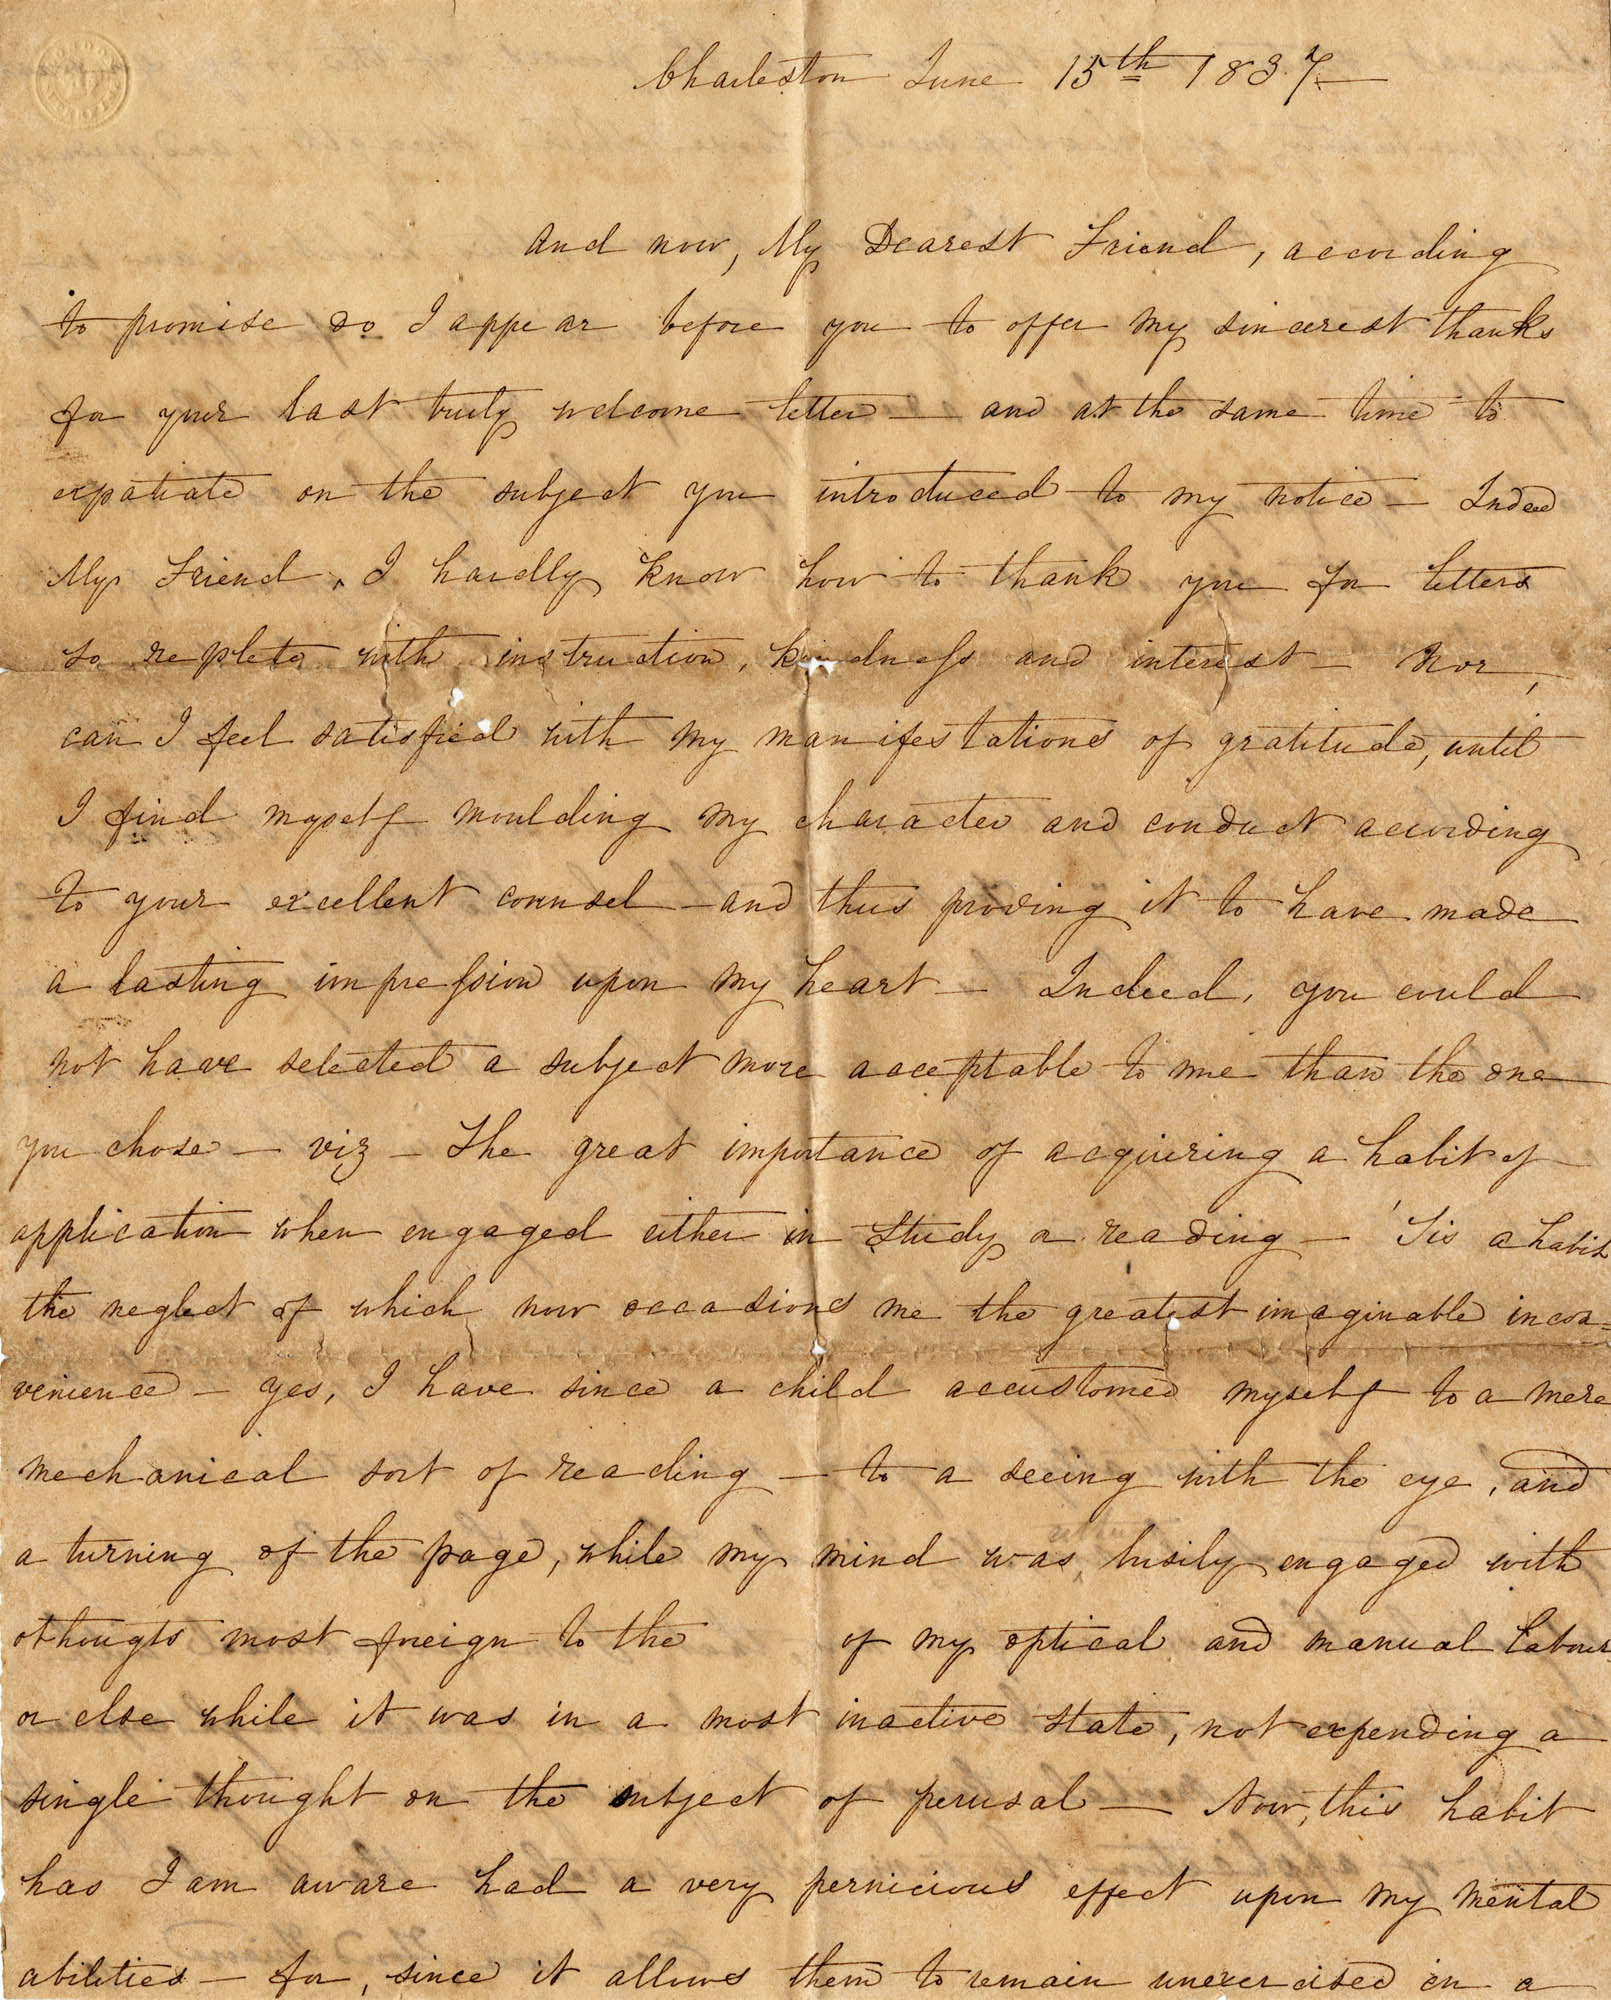 002. V. to an unnamed friend -- June 15, 1837